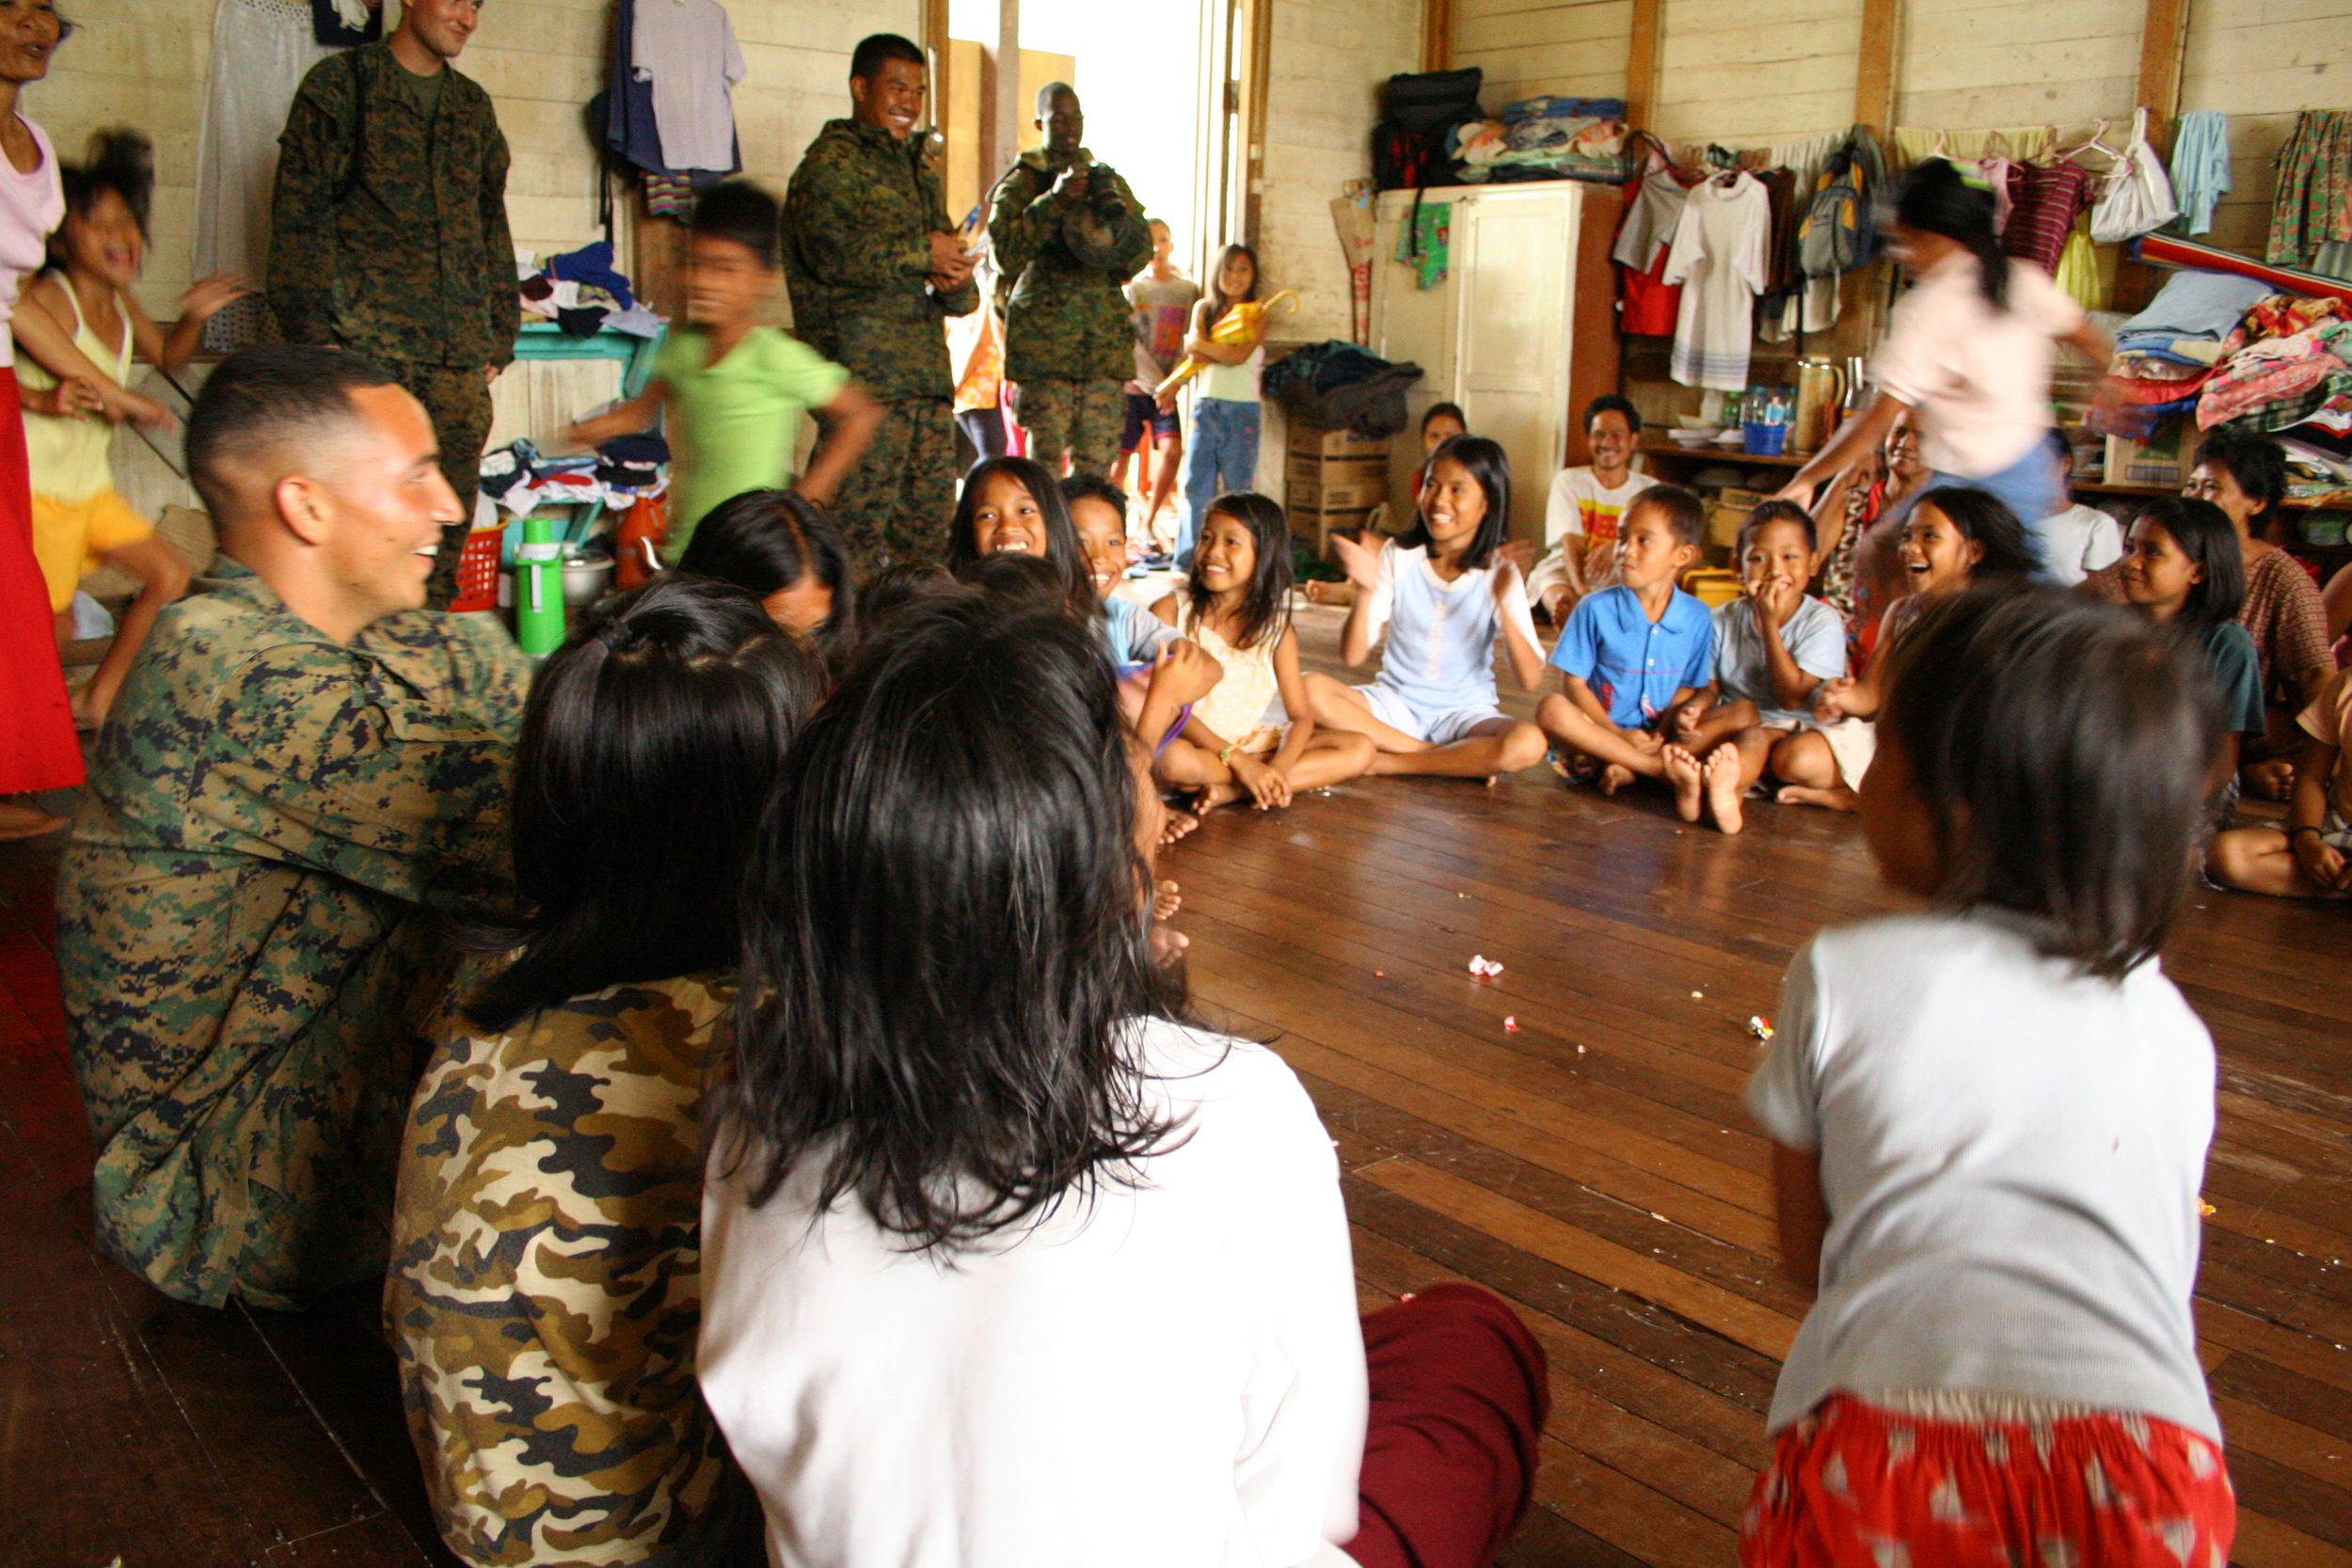 U.S. military personnel play duck-duck-goose with children at the orphanage in Saint Bernard, Leyte, Philippines.